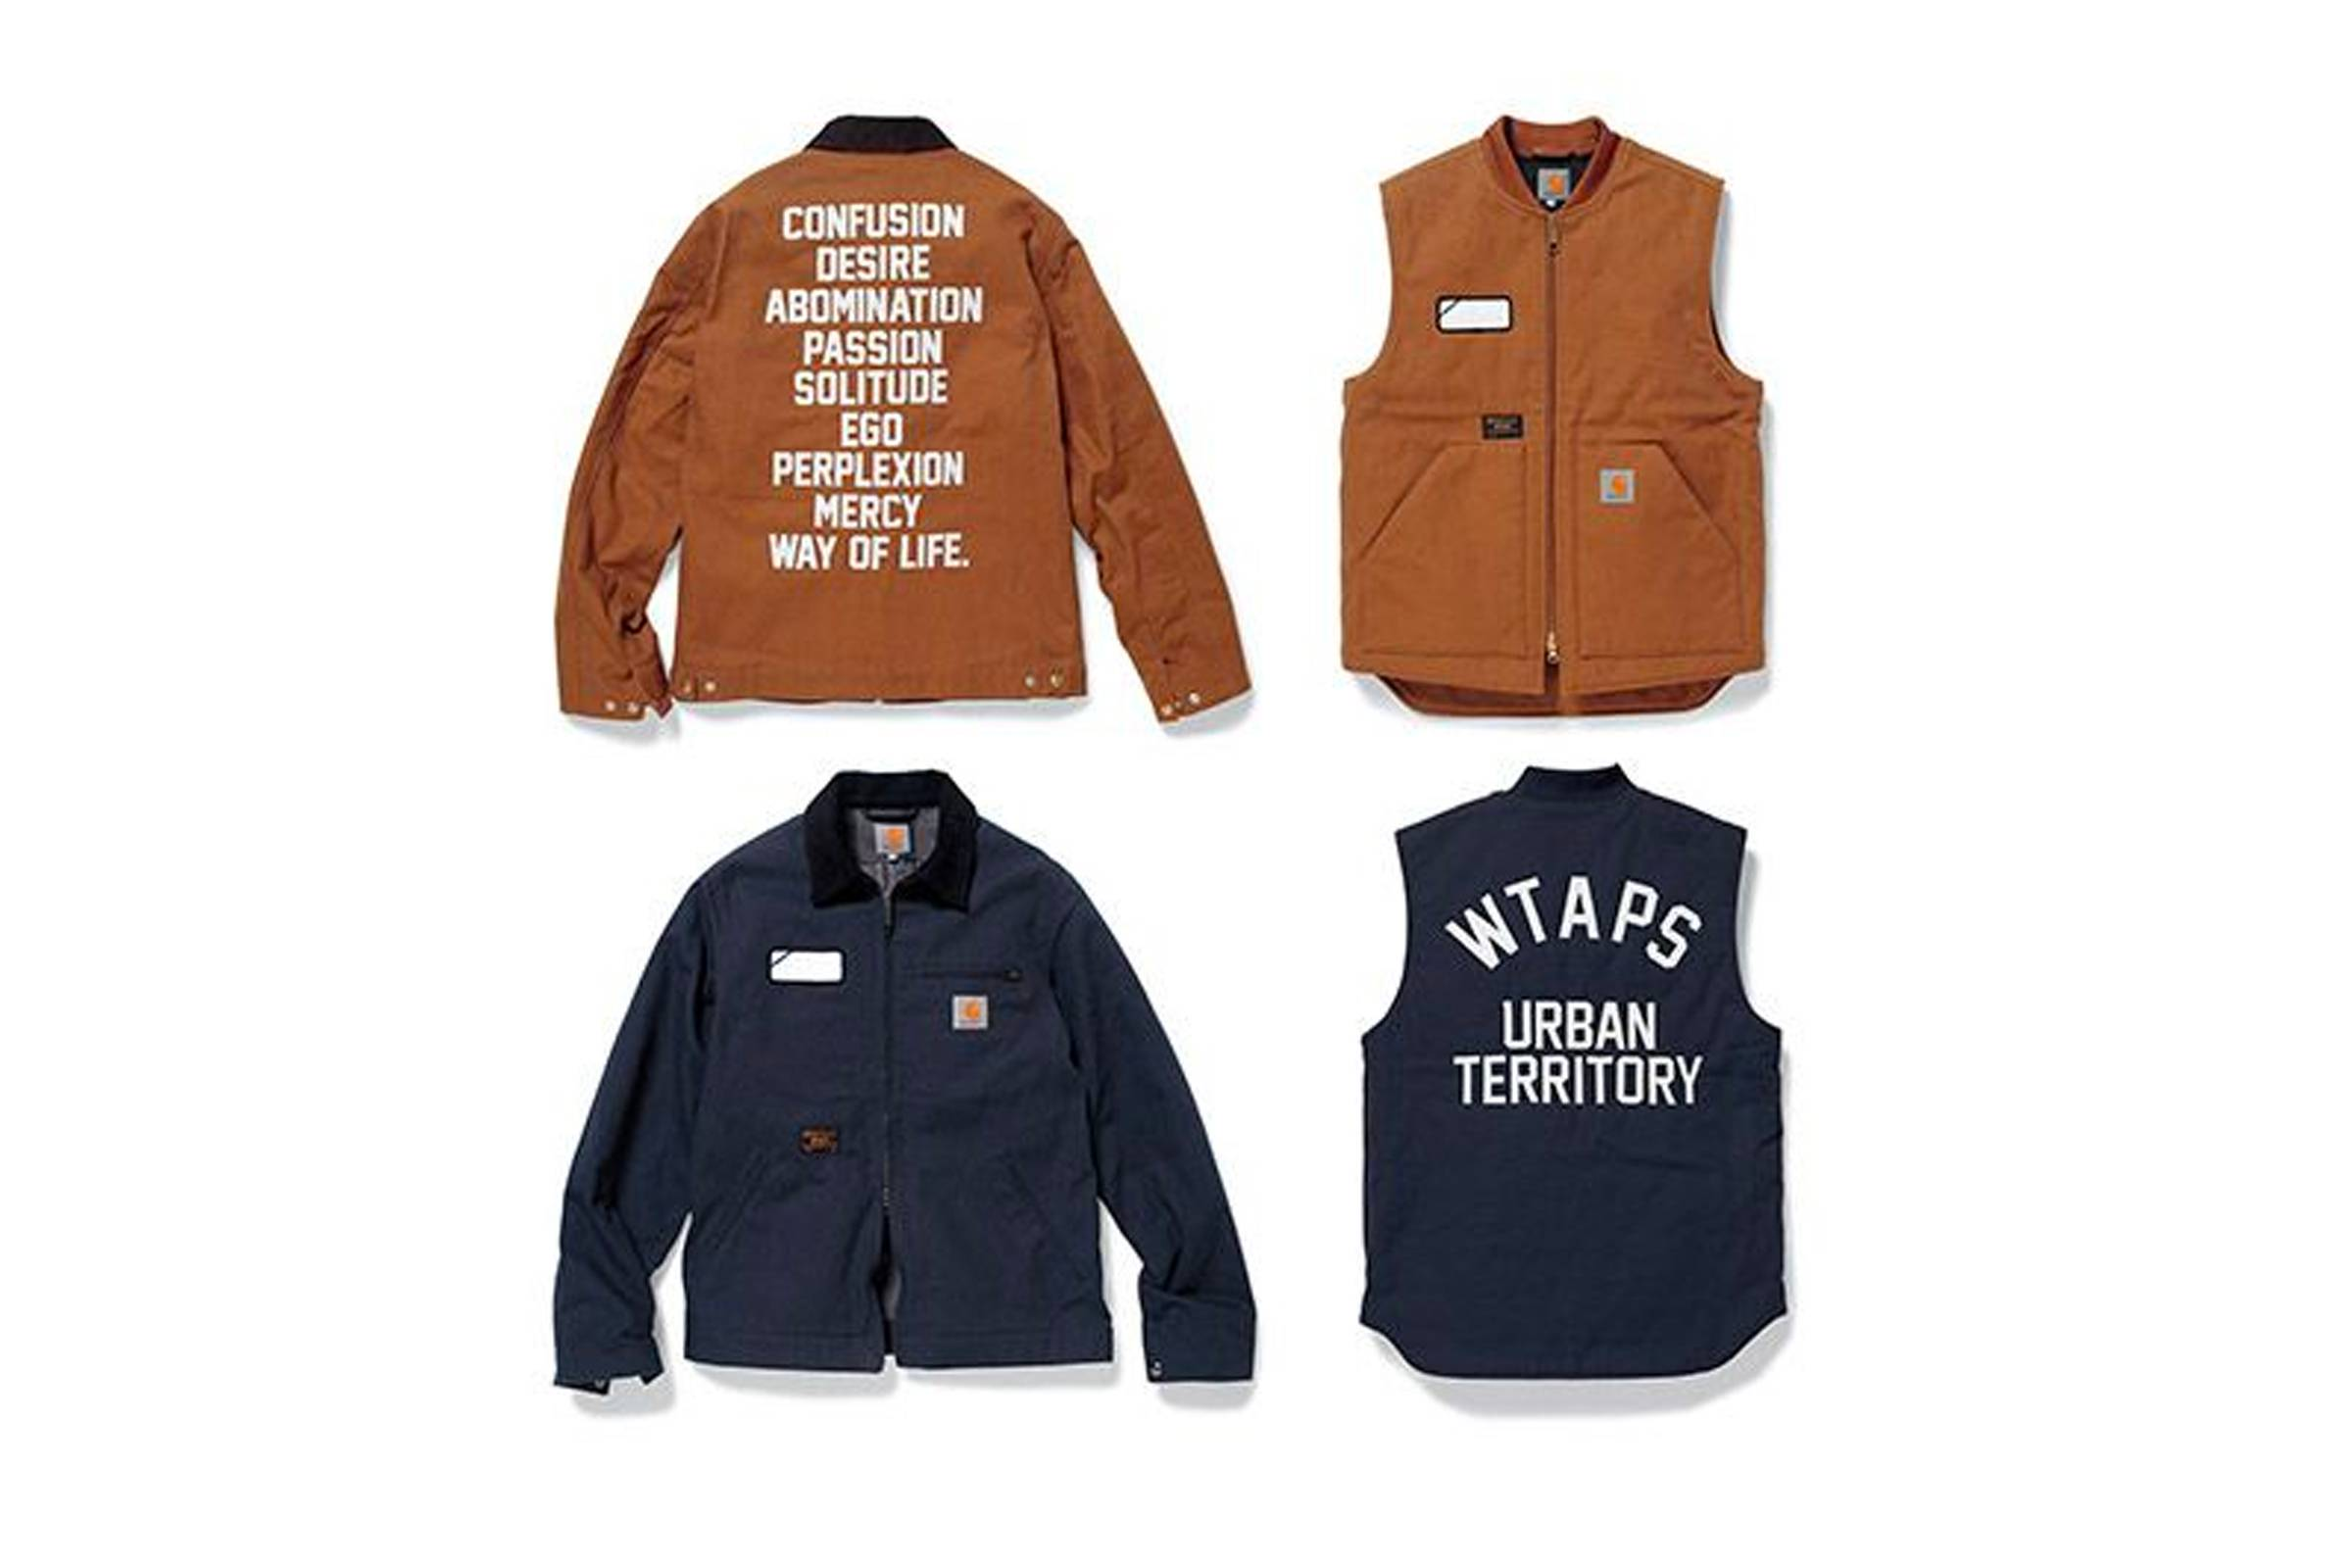 Carhartt W.I.P. x WTAPS Fall/Winter 2015